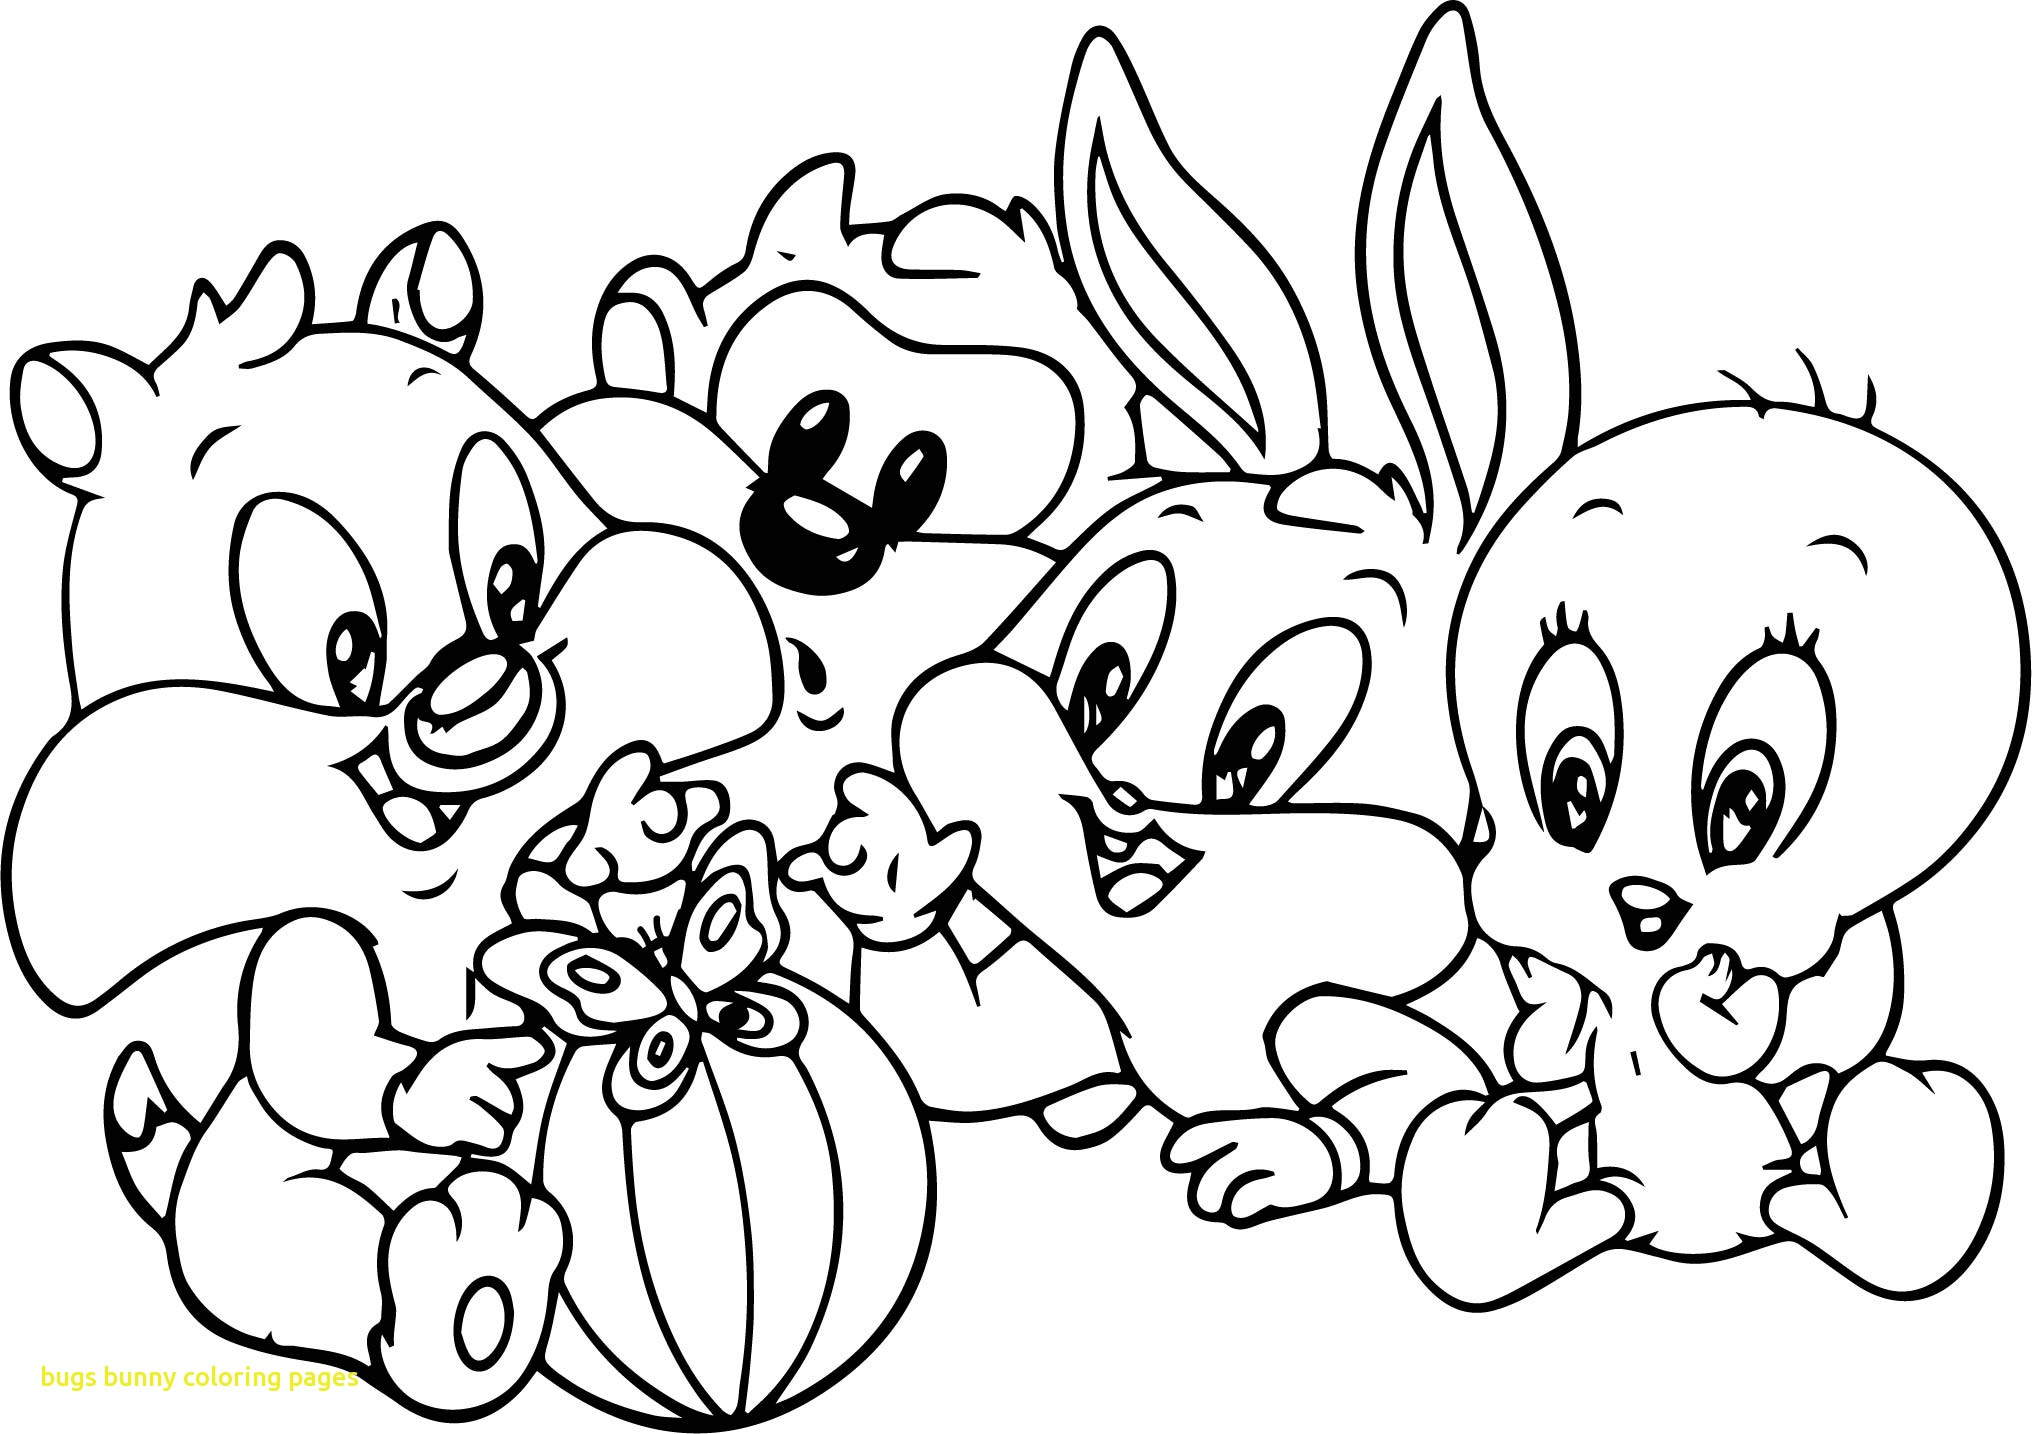 2032x1434 Bugs Bunny Coloring Pages With Ribsvigyapan Bugs Bunny Bugs